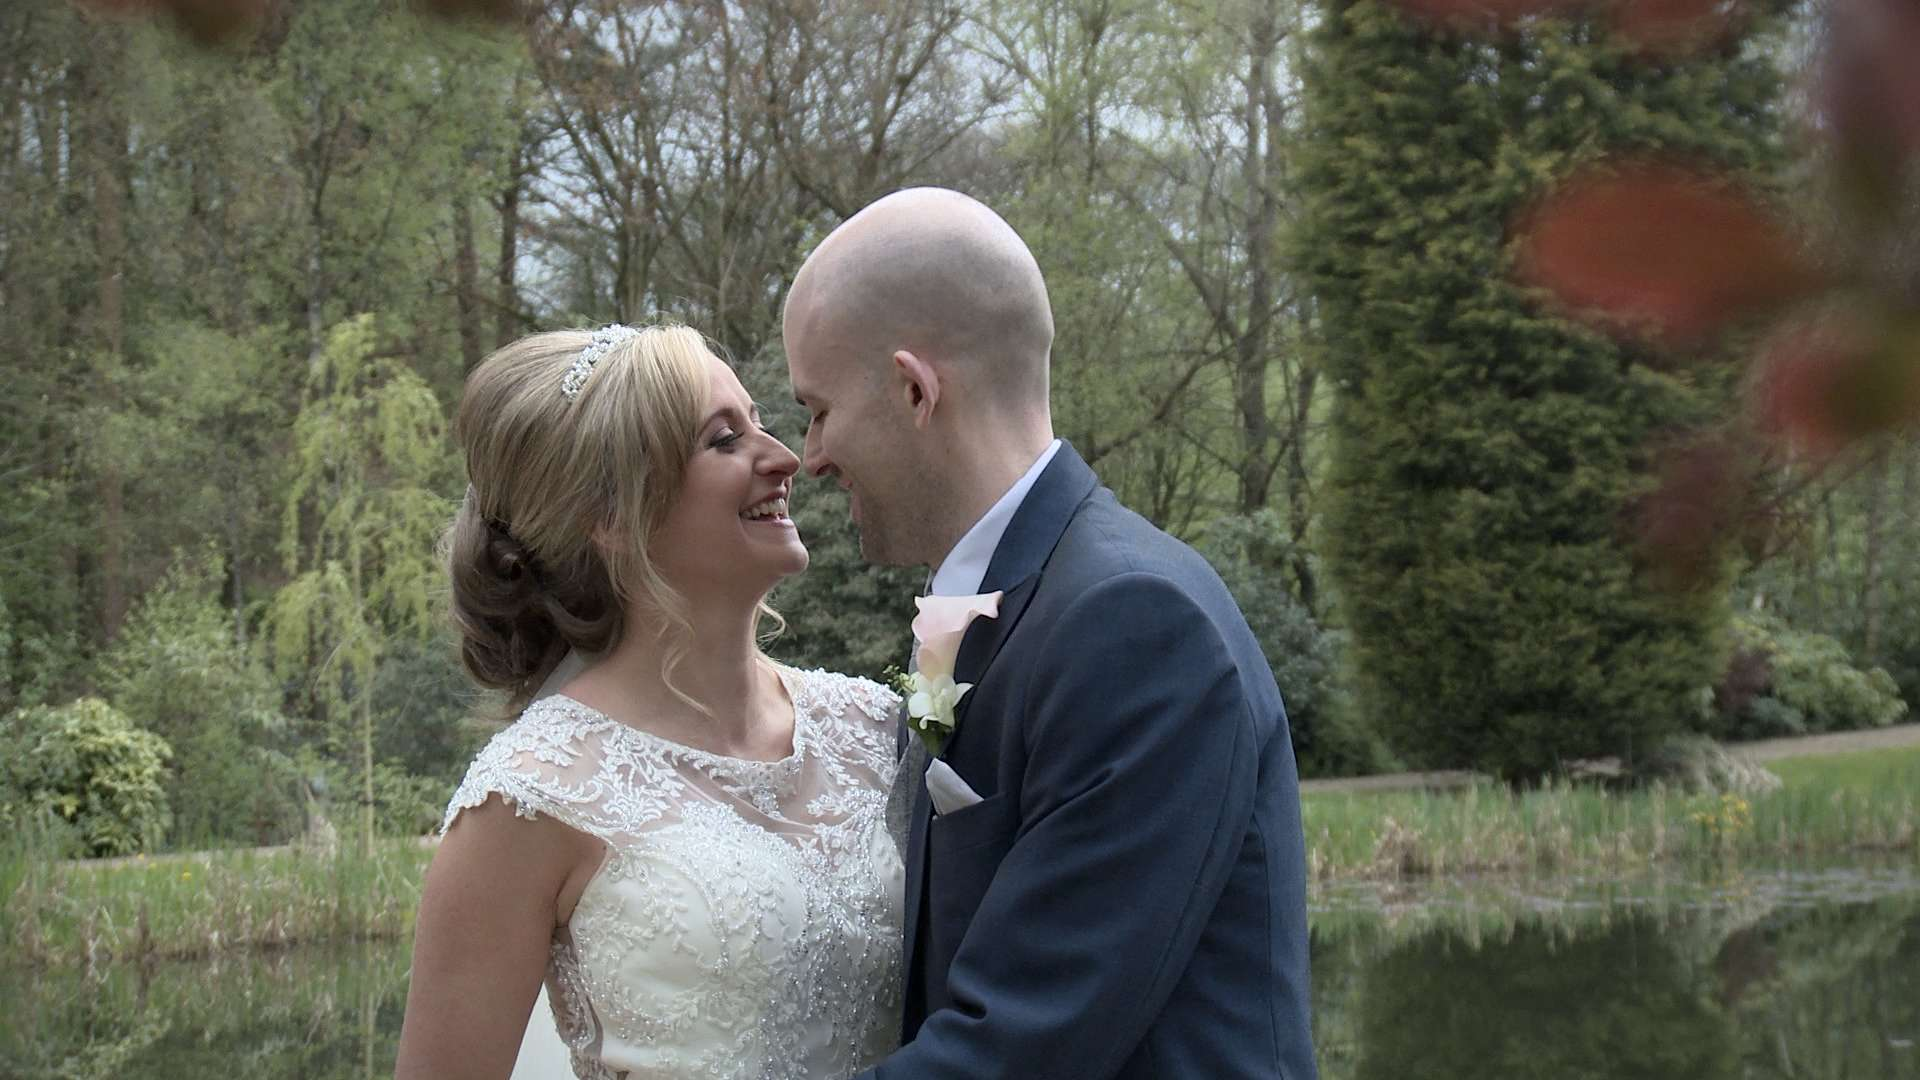 An Outdoor Spring Wedding Video – Moddersall Oaks